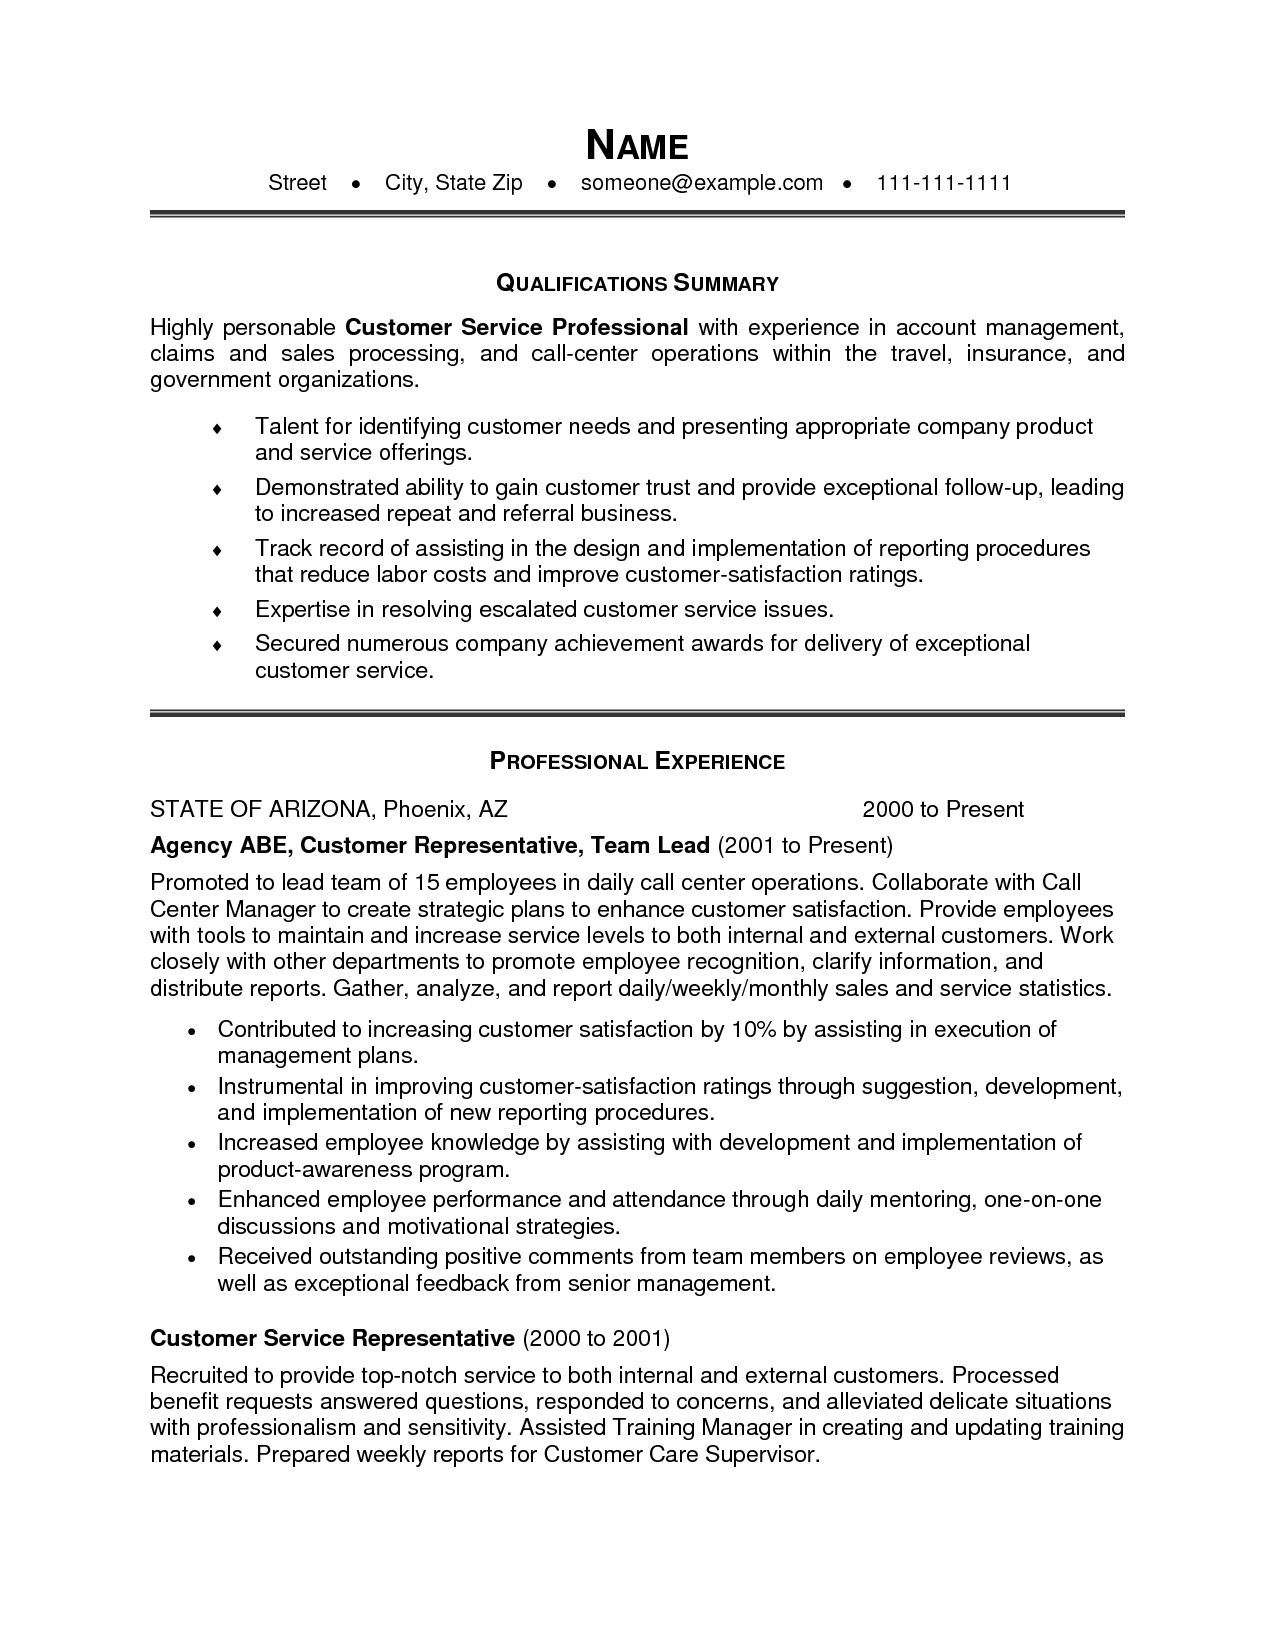 Sample Resume Summary Customer Service Resume Summary Examples Resume Summary Examples